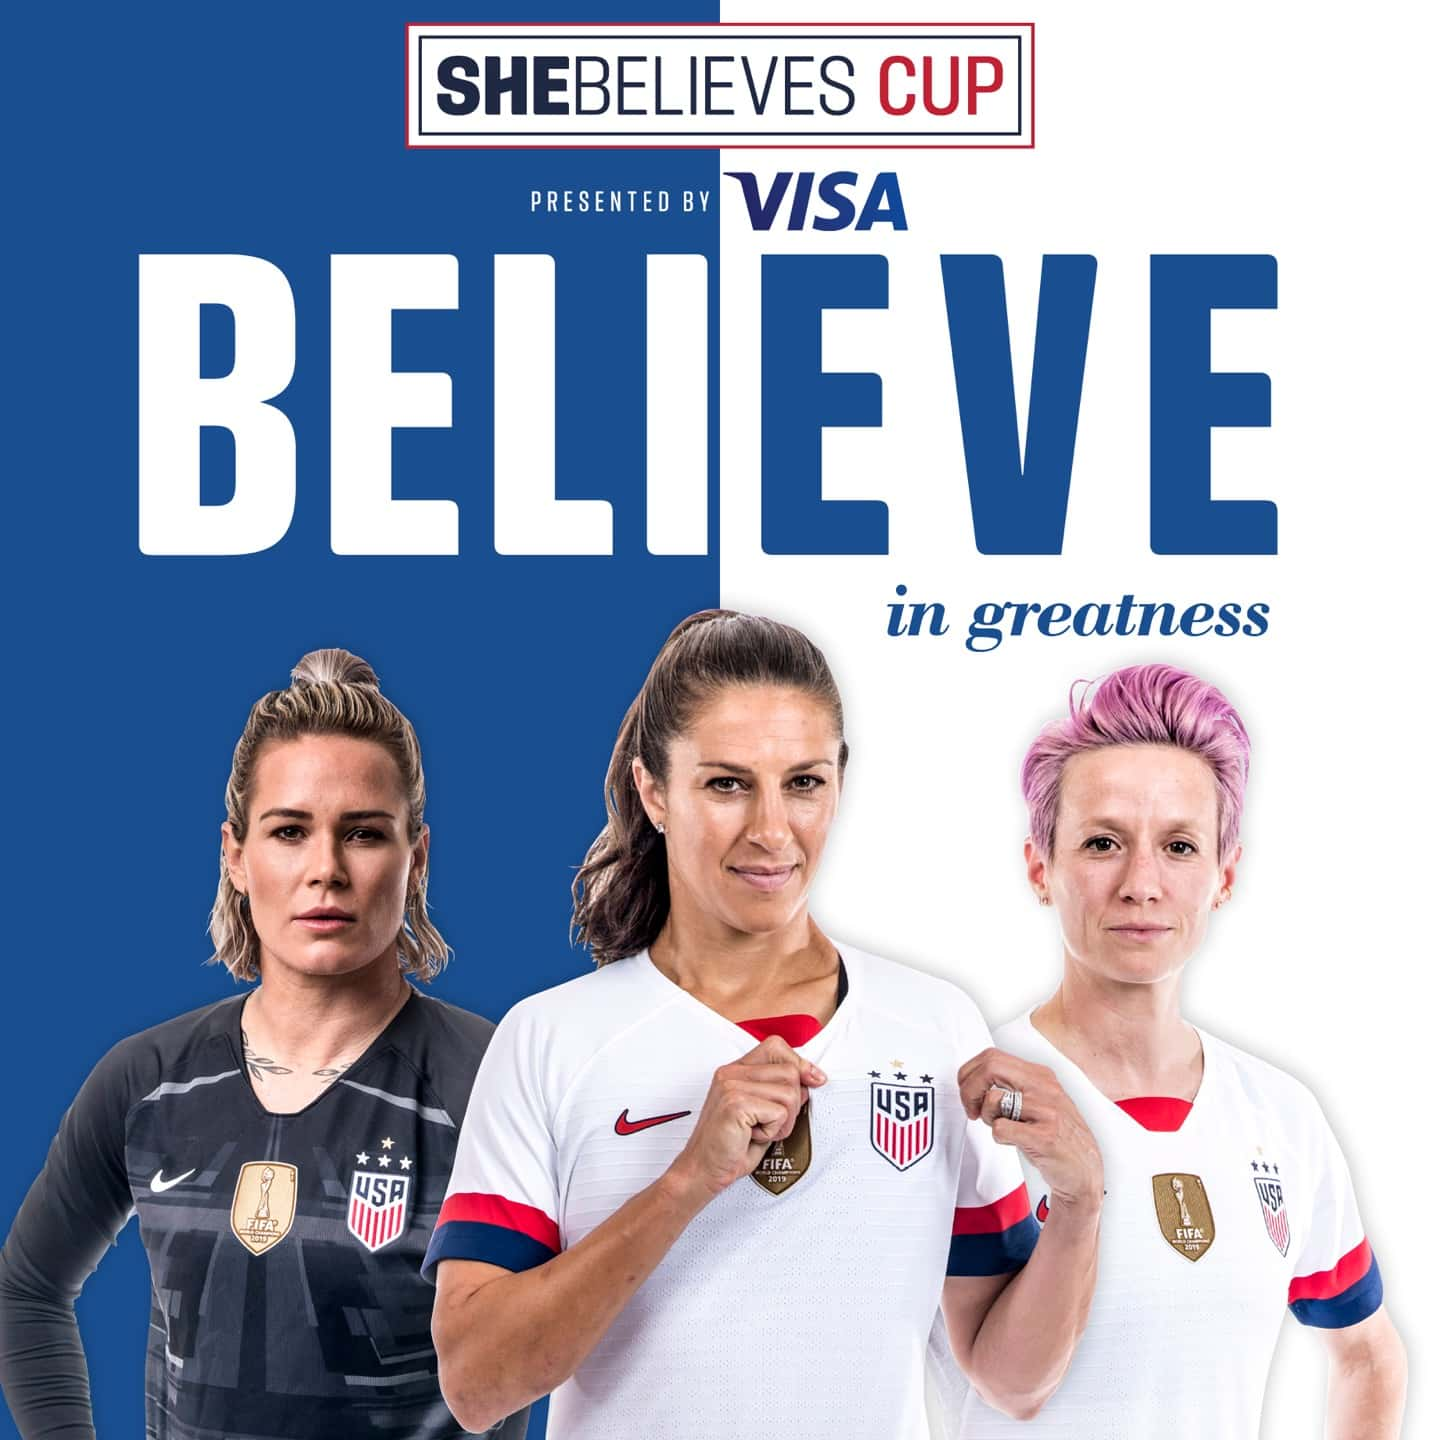 2020 SheBelieves Cup, Presented by Visa, Highlights U.S. Soccer's Most Expansive SheBelieves Campaign to Inspire, Encourage and Empower